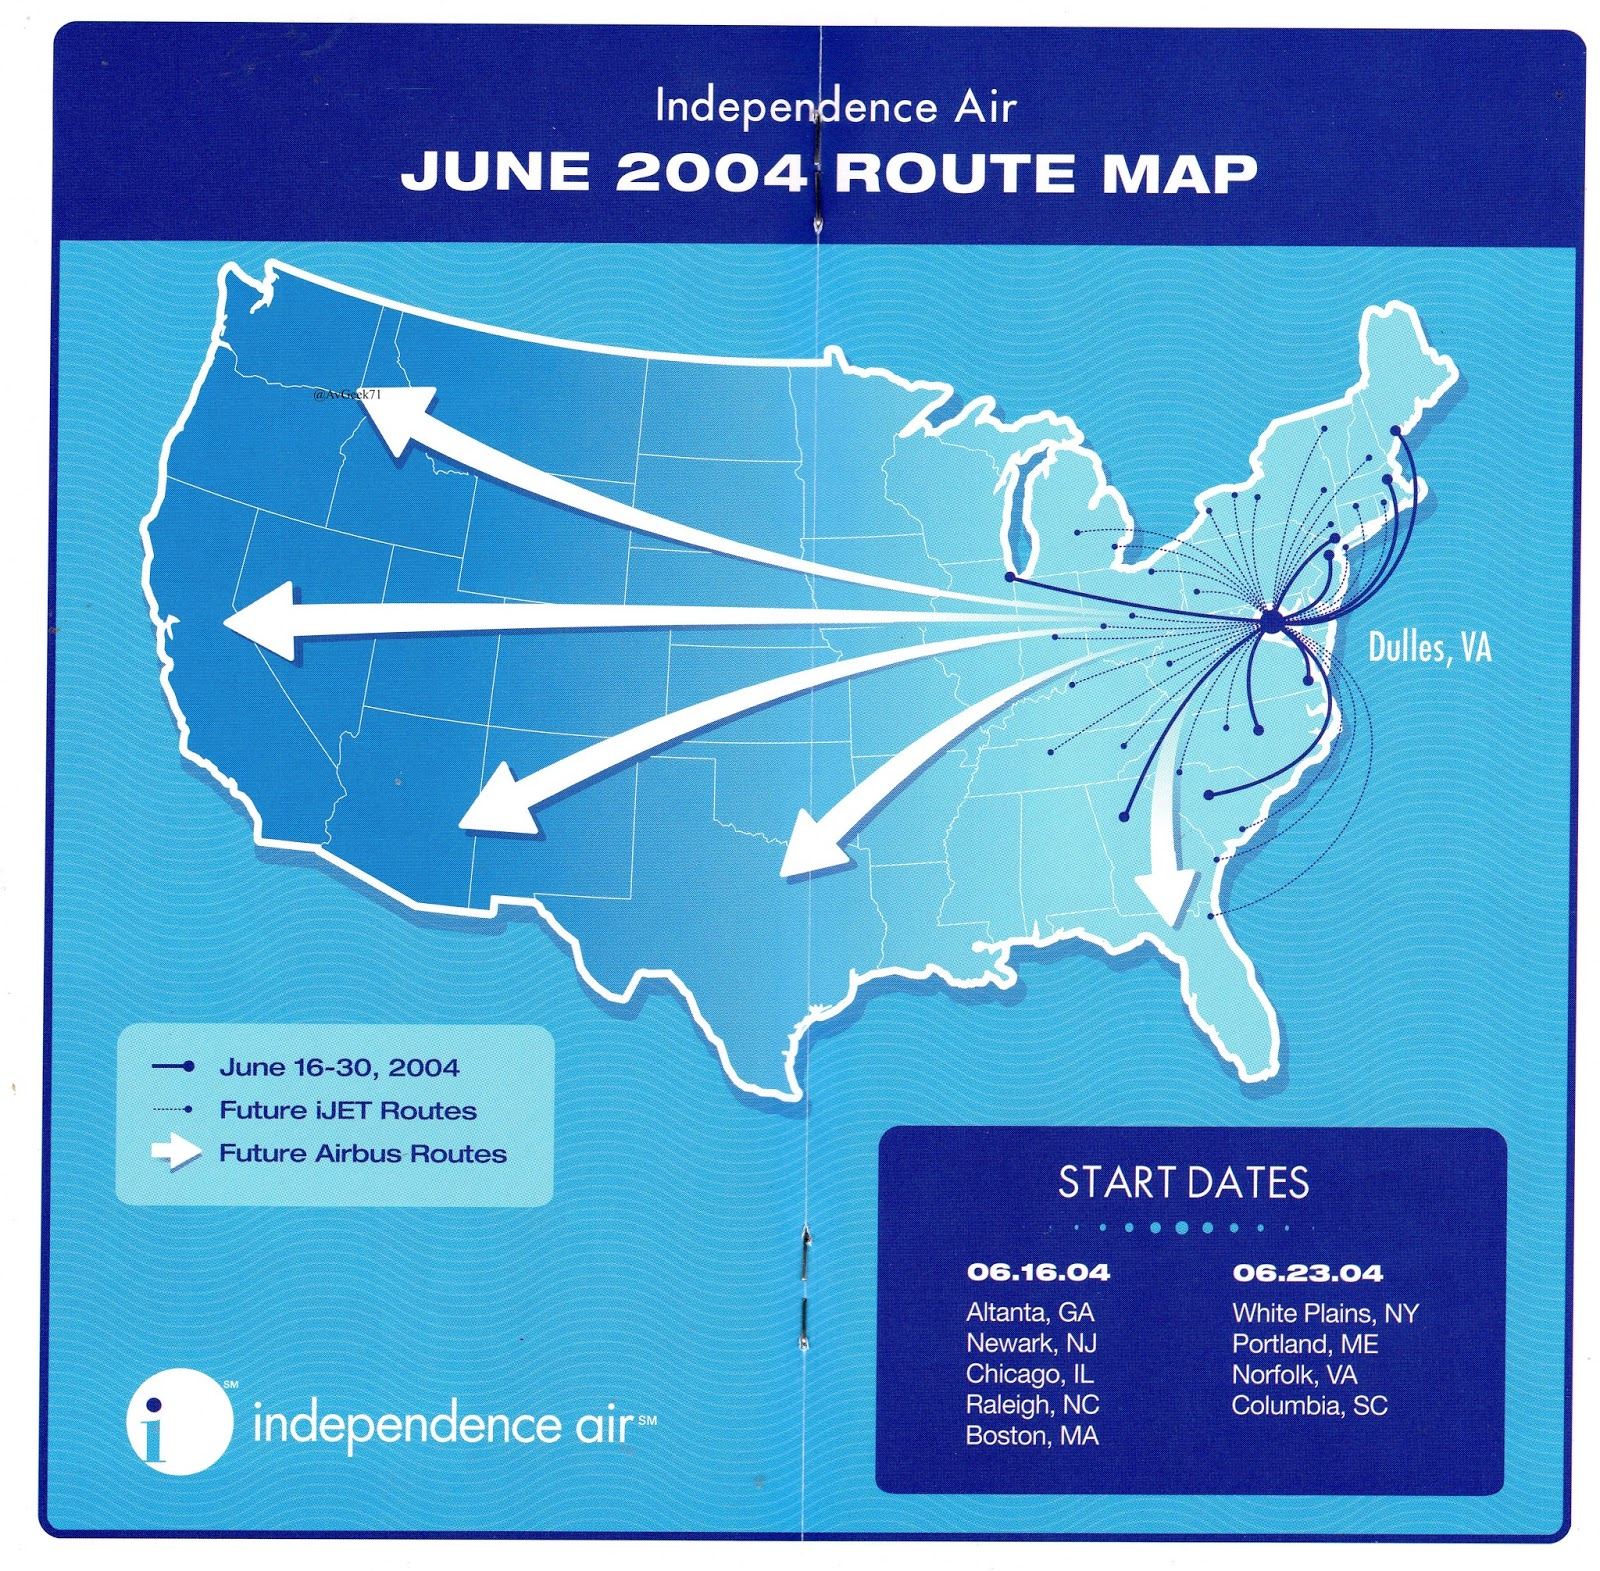 Airline Timetables: Independence Air - June, 2004 on capital airlines route map, austrian airlines route map, saudi arabian airlines route map, trump shuttle route map, korean airlines route map, ted route map, solomon airlines route map, southwest route map, spirit airlines route map, asiana route map, malaysia airlines route map, republic airlines route map, jet airways route map, northwest route map, luxair route map, canjet route map, swiss route map, liat route map, united route map,